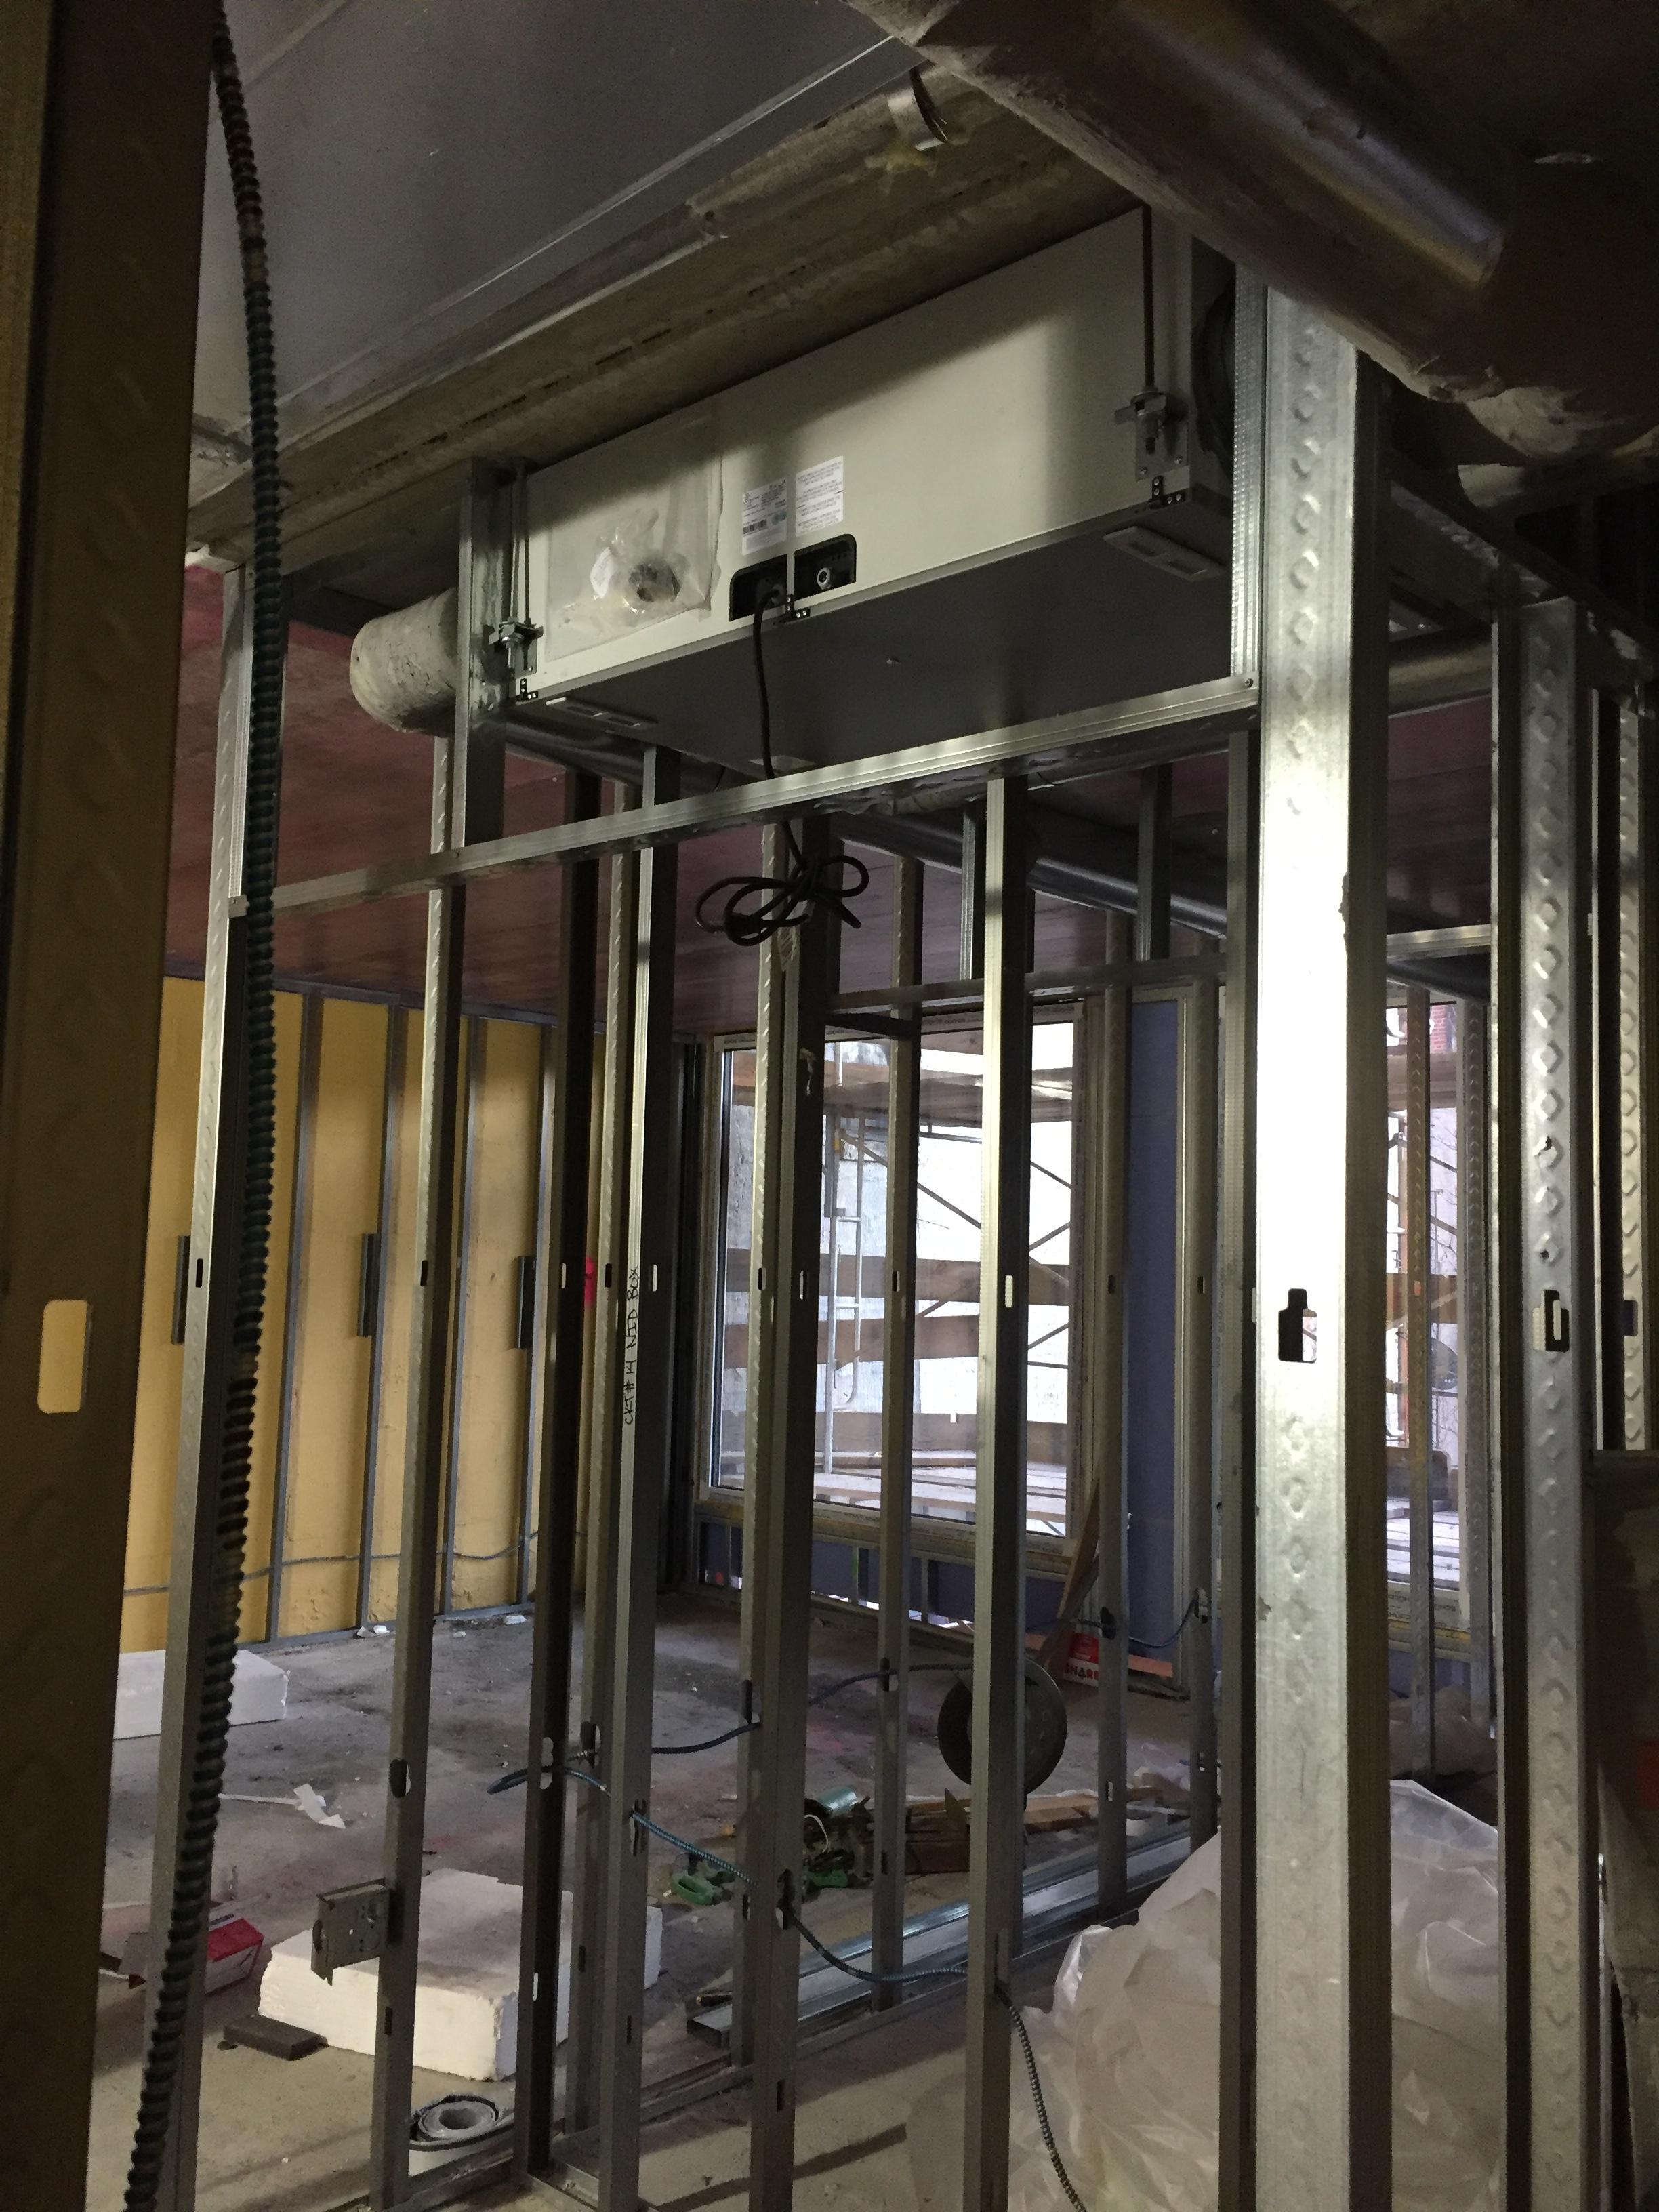 An ERV unit being installed at 542 West 153rd Street